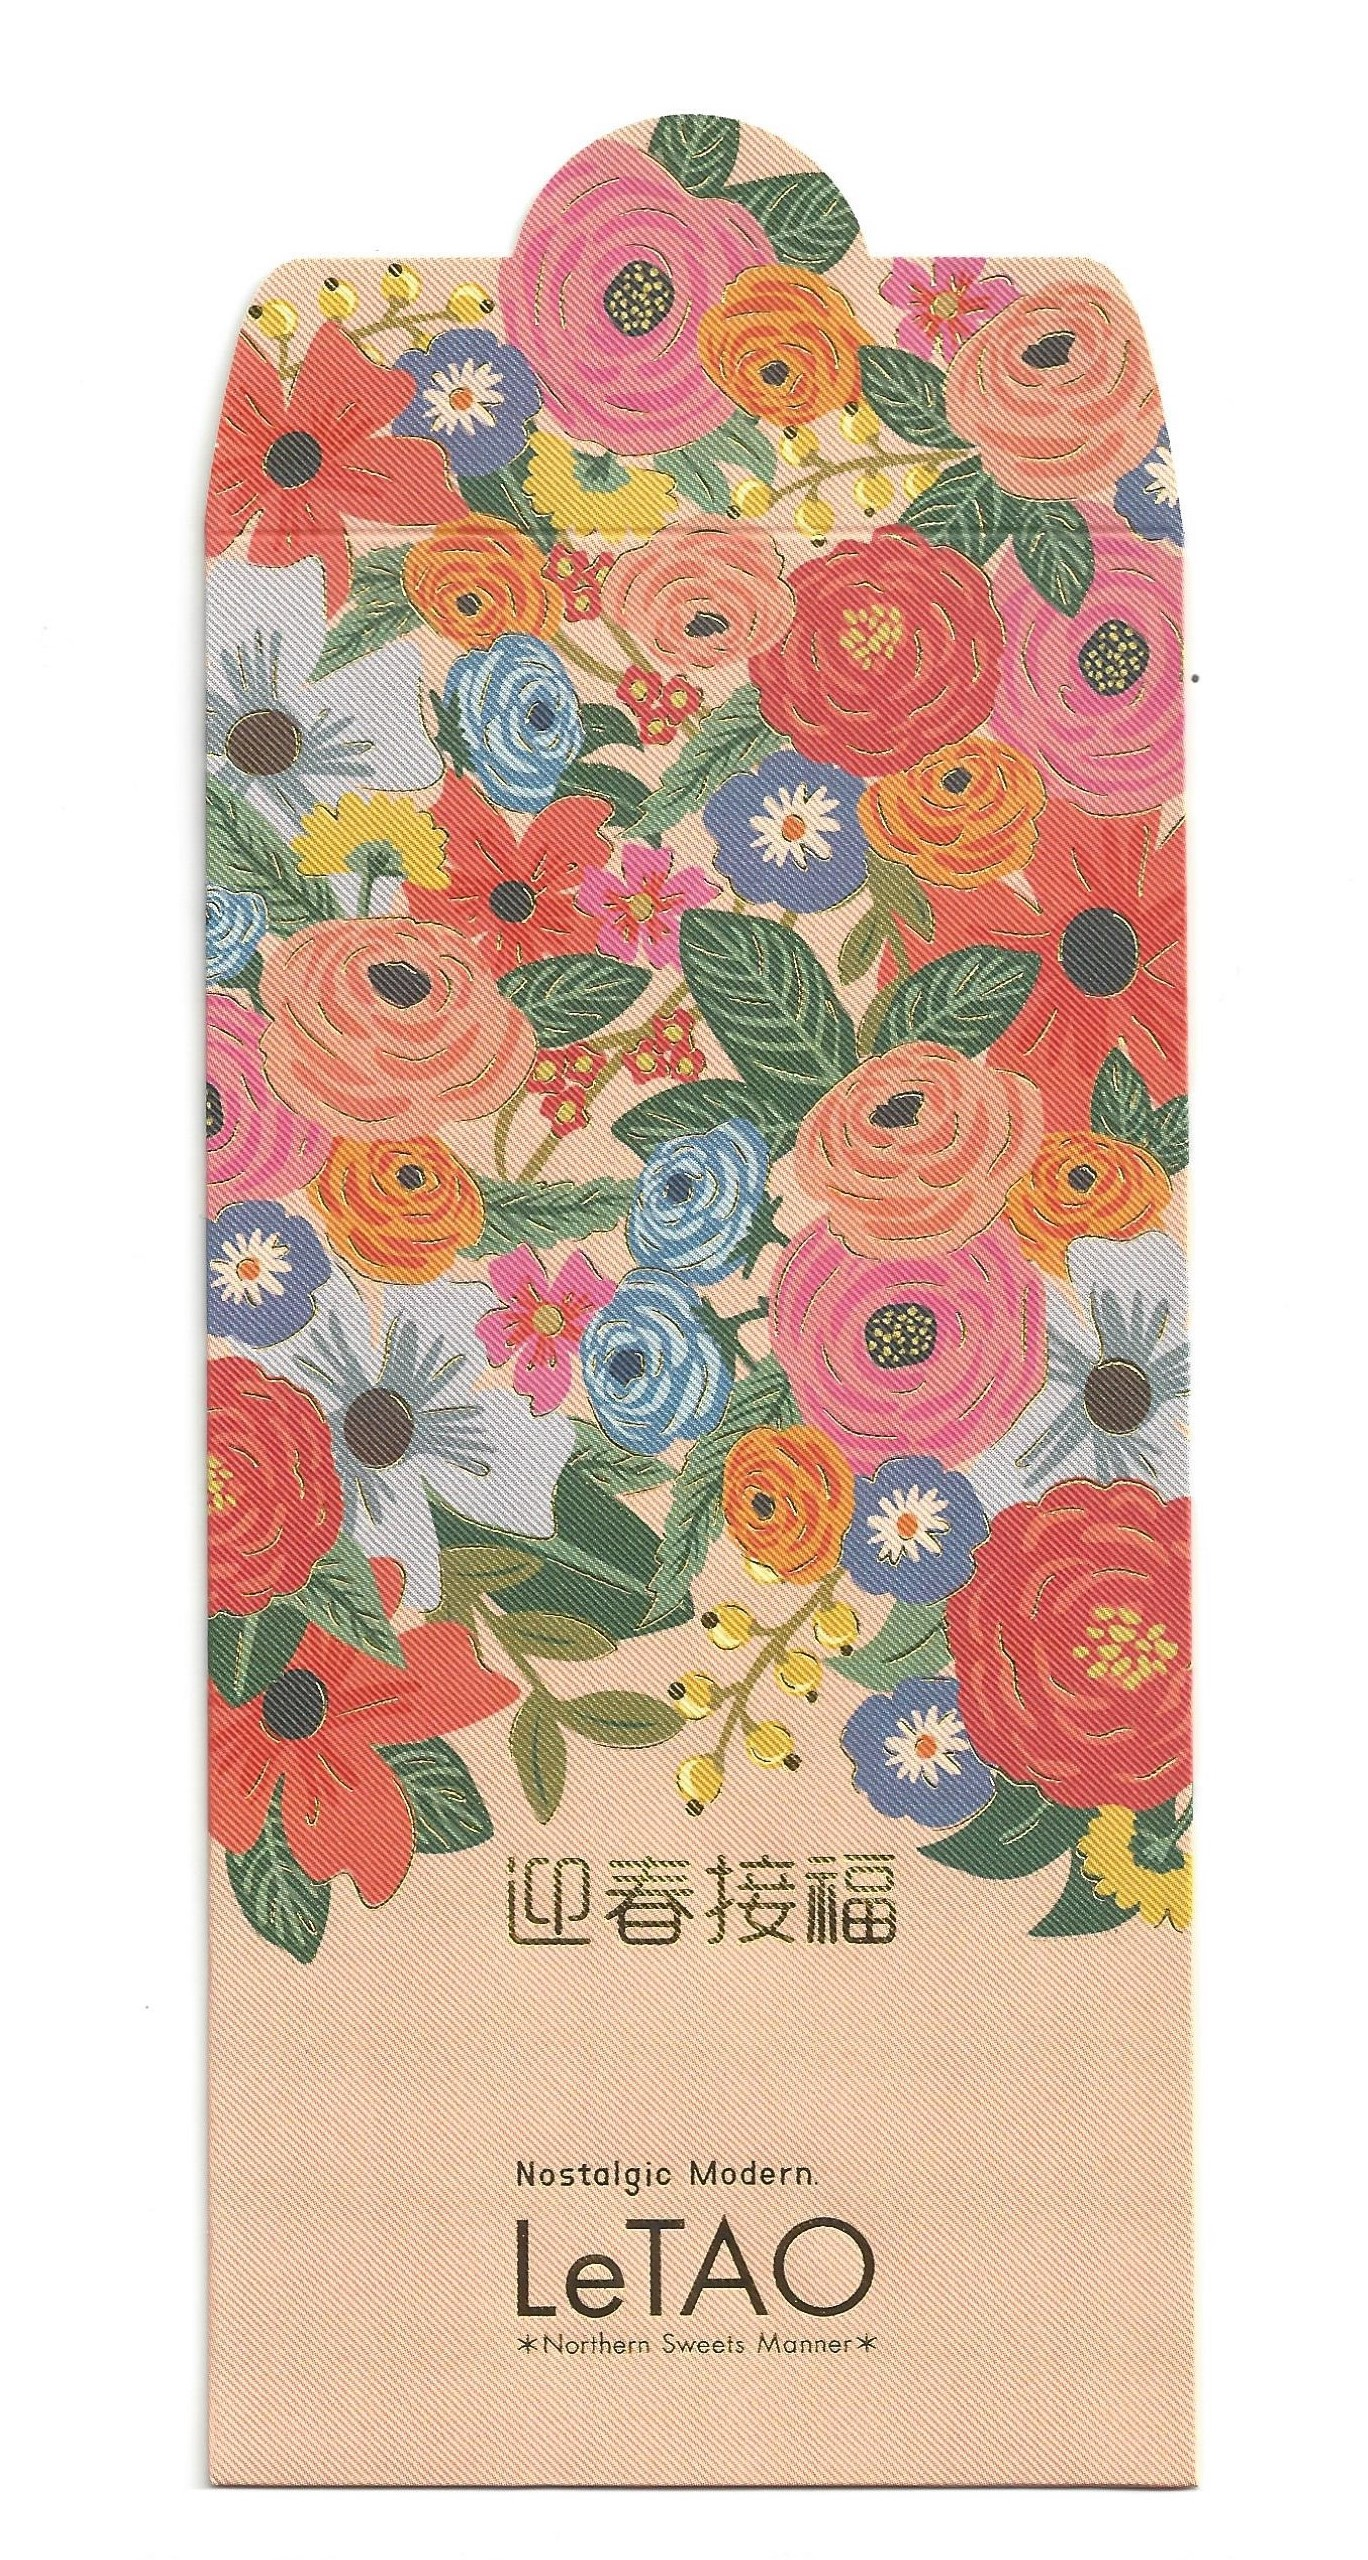 letao red packet